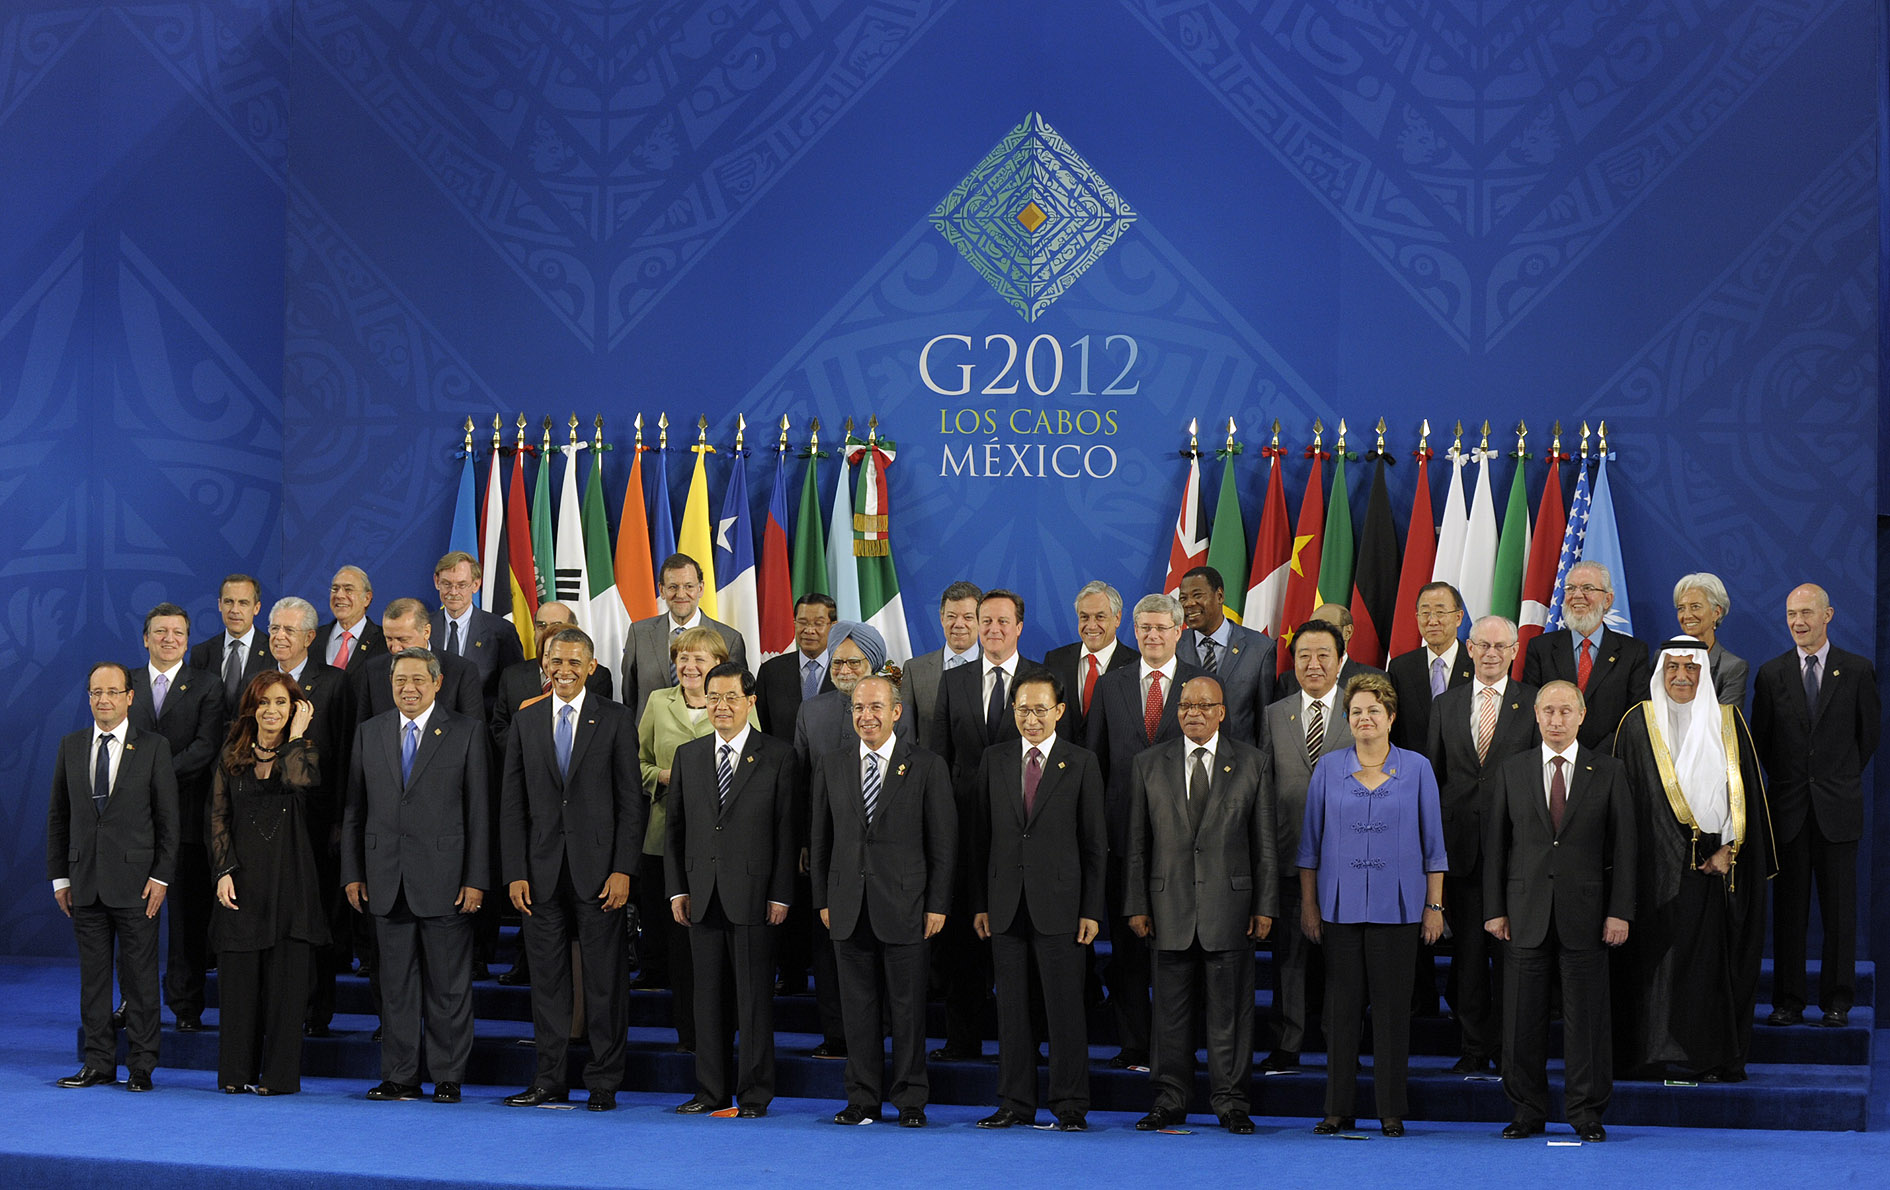 The leaders of G20, in Mexico 2012